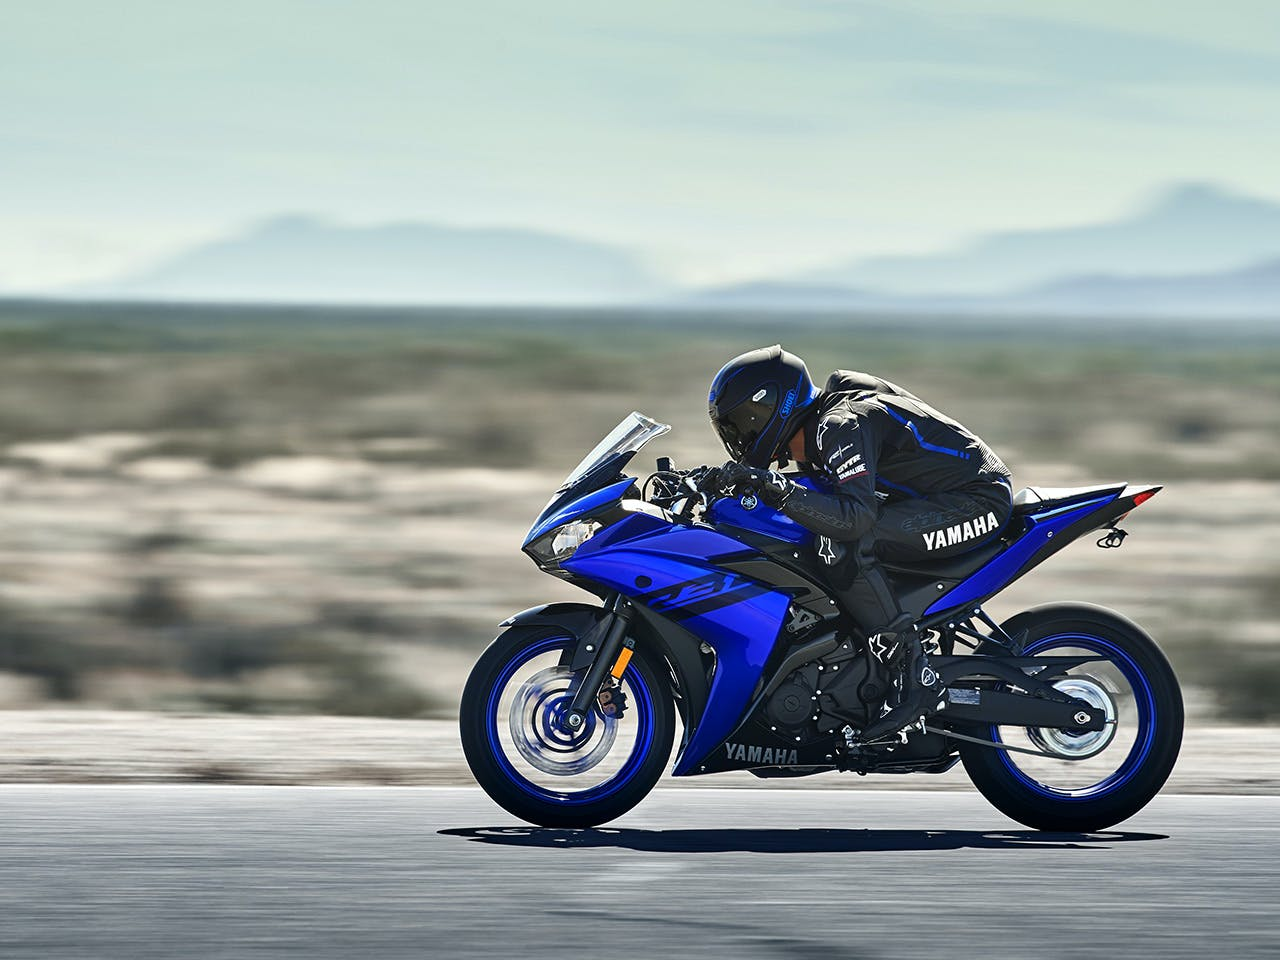 Yamaha YZF-R3 2018 being ridden on a road